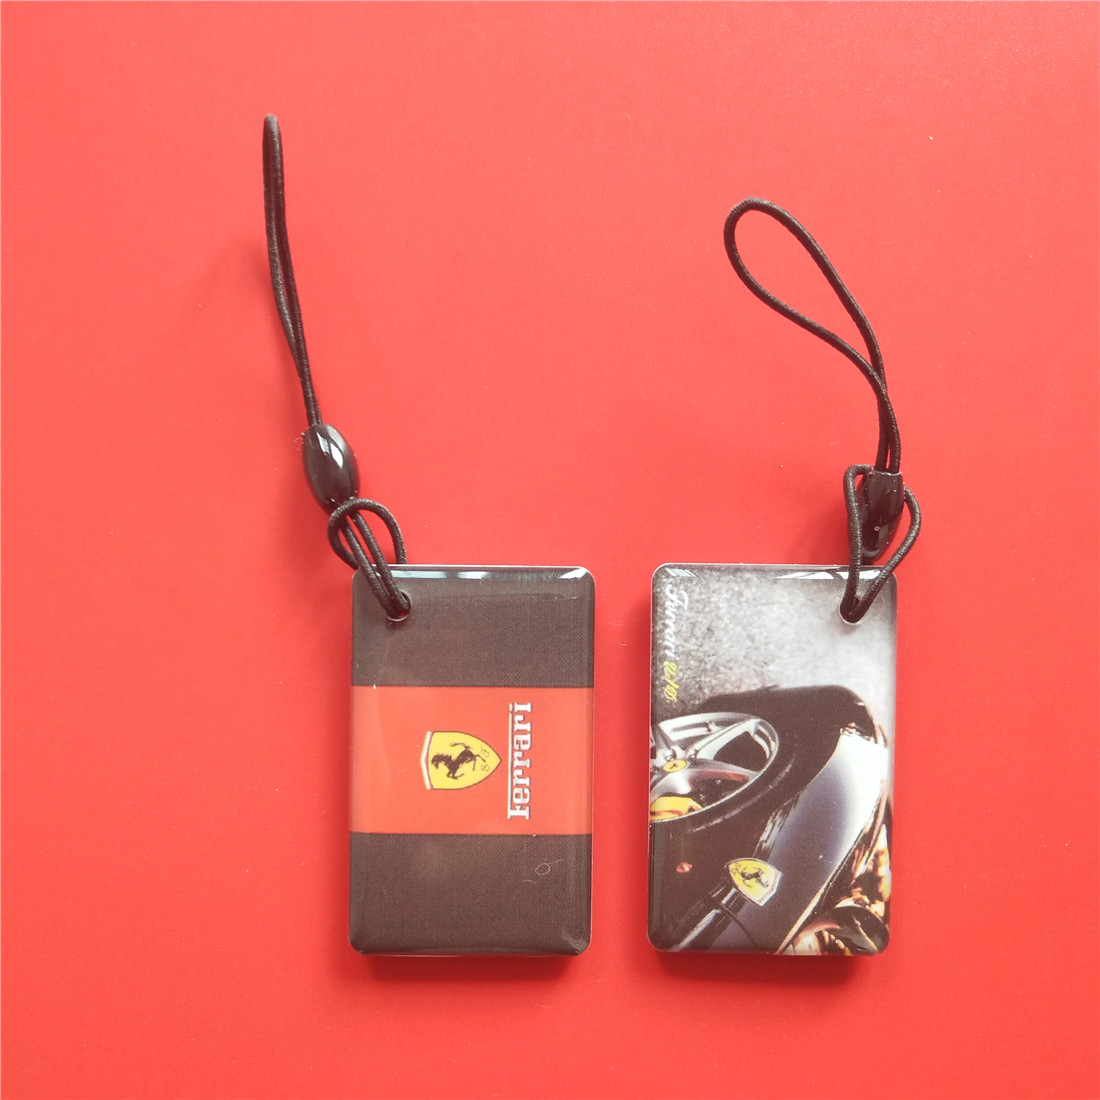 UID RFID Card 13.56MHz NFC Tag Magnetic Key Proximity 1K S50 Chip Block 0 Sector Writable hw v7 020 v2 23 ktag master version k tag hardware v6 070 v2 13 k tag 7 020 ecu programming tool use online no token dhl free